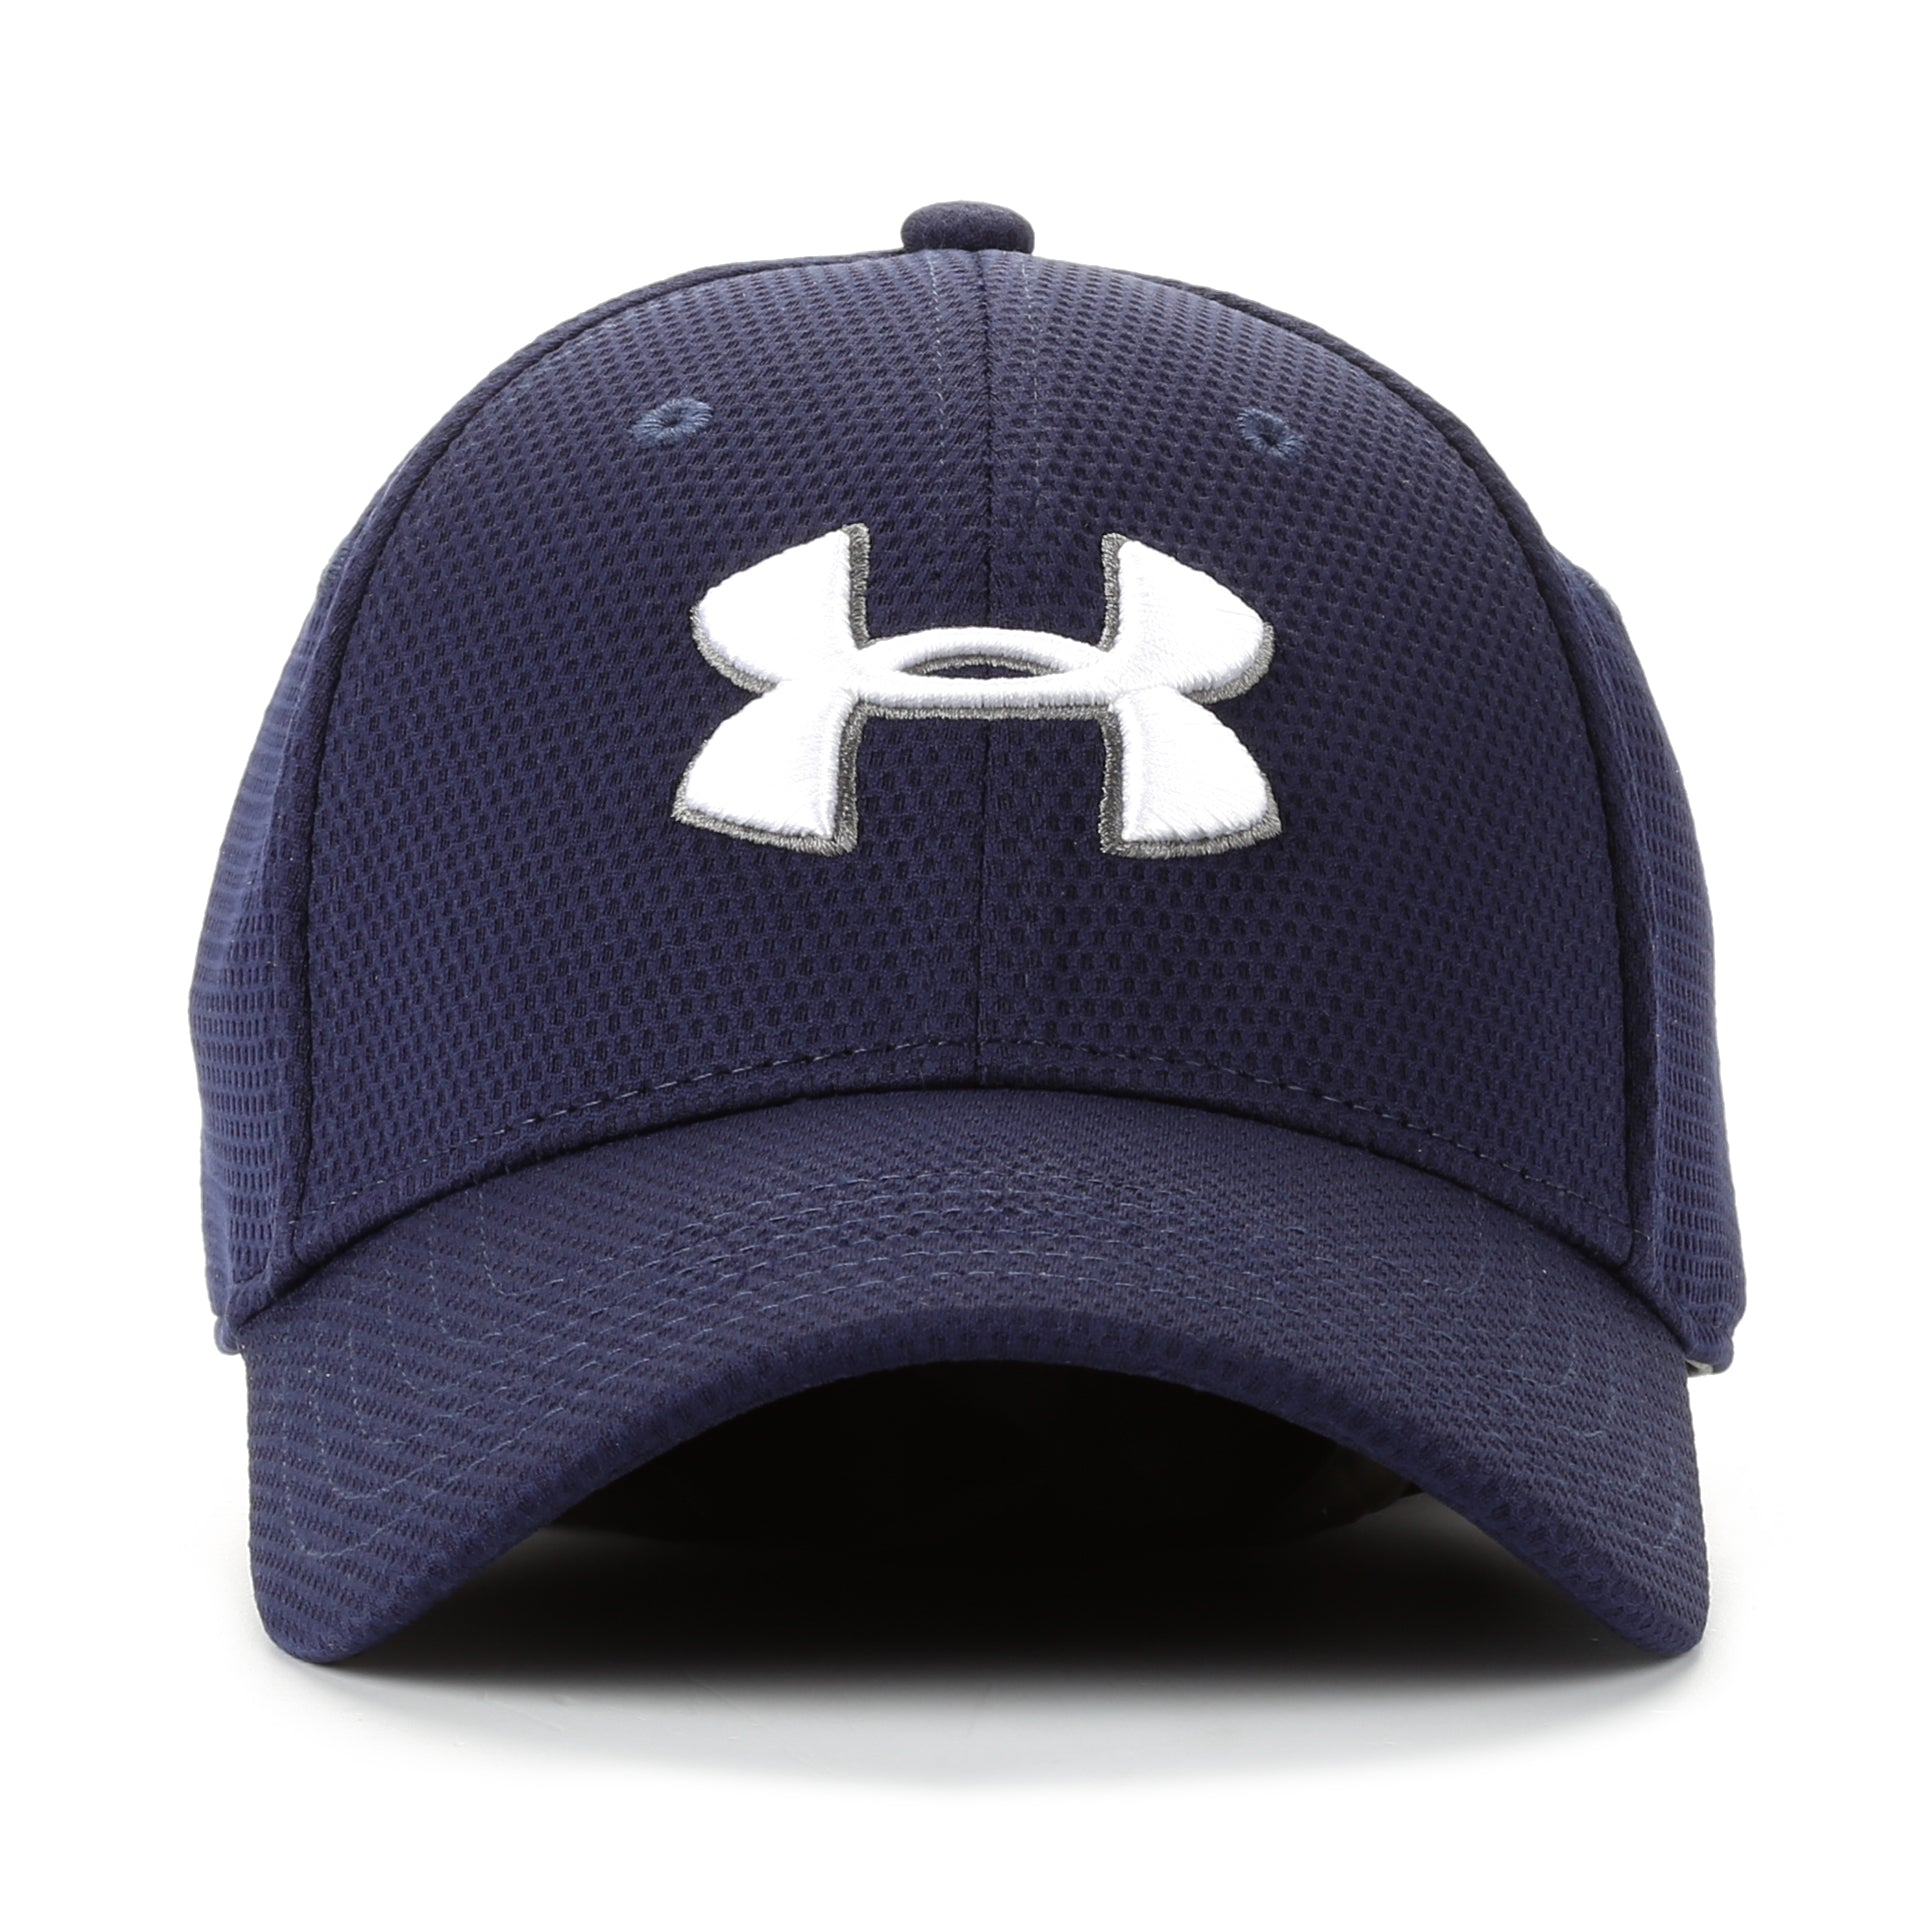 Under Armour Blitzing II Stretch Fit Hat - Navy White - New Star 7860b4ffb82